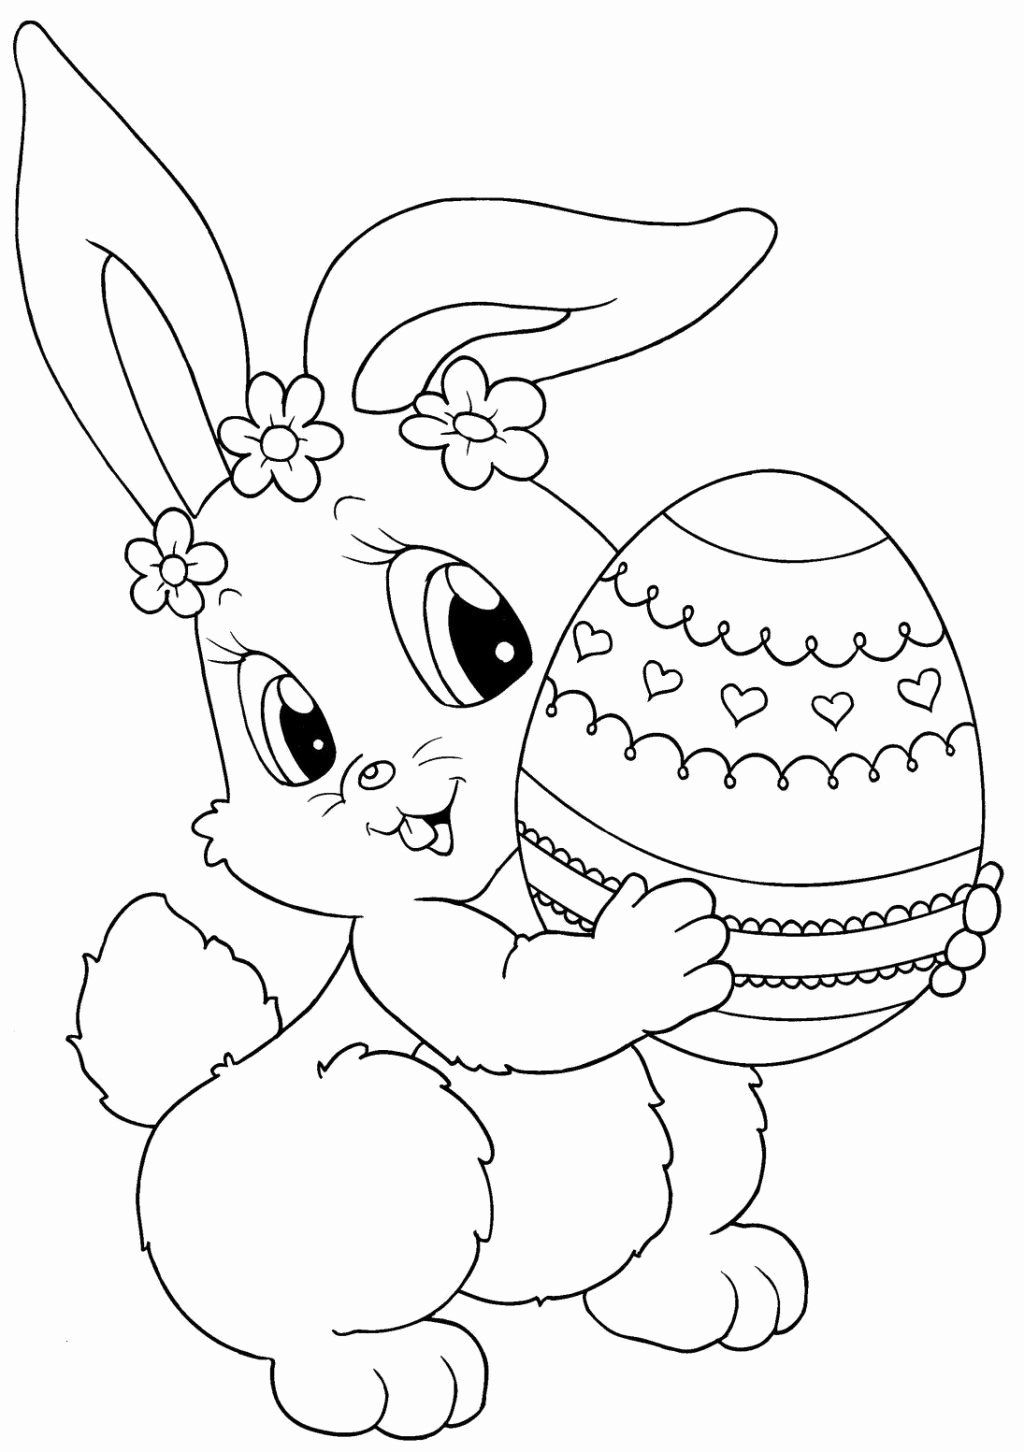 Easter Images Coloring Pages